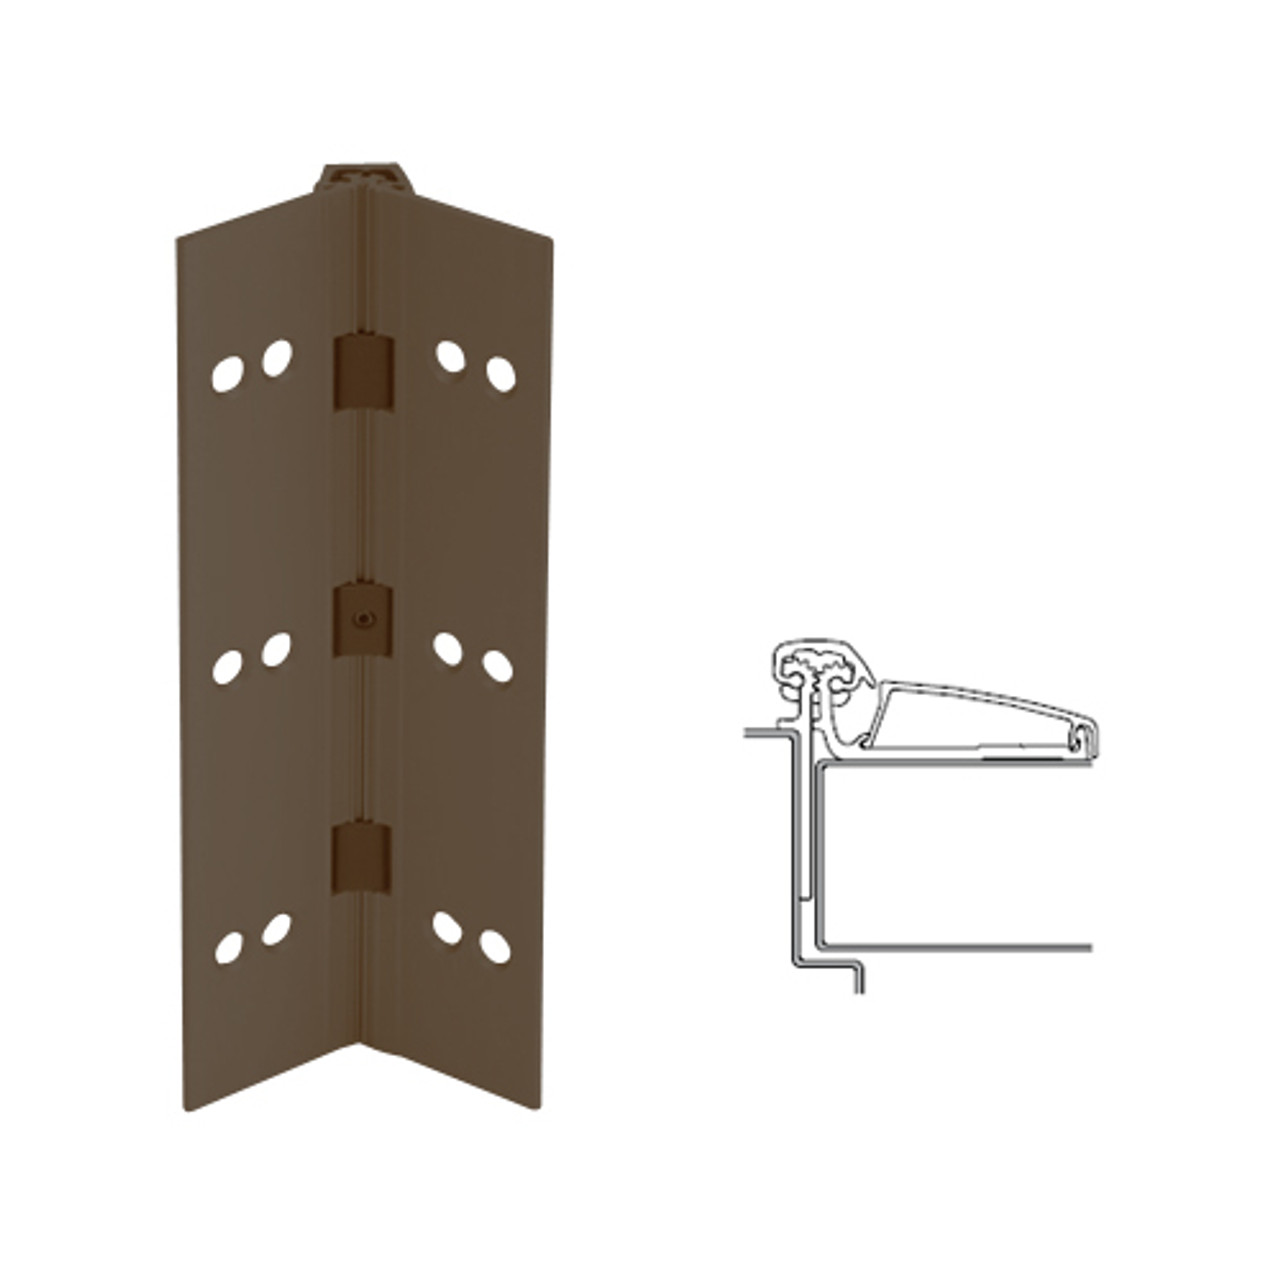 045XY-313AN-95-SECWDWD IVES Adjustable Half Surface Continuous Geared Hinges with Security Screws - Hex Pin Drive in Dark Bronze Anodized